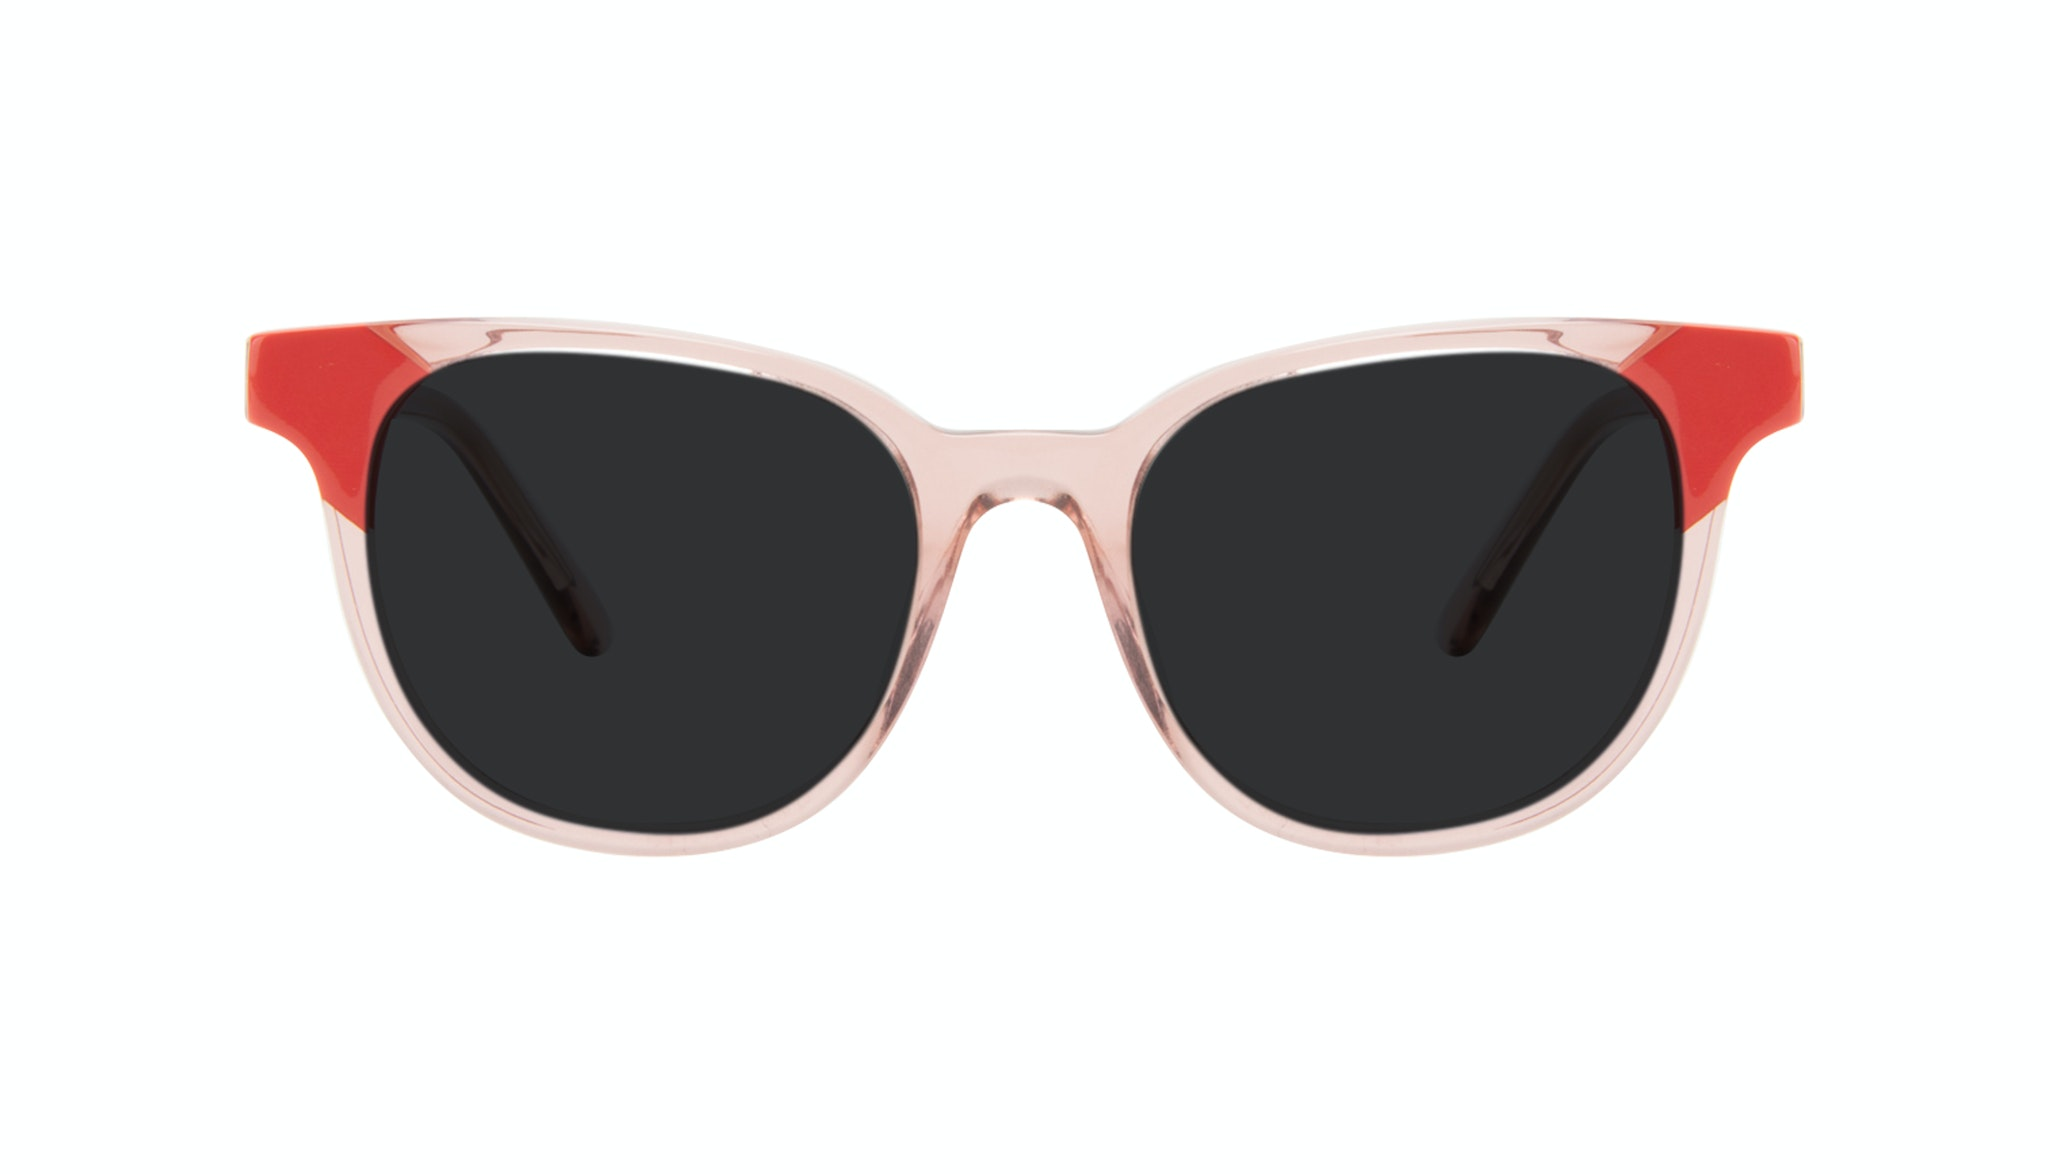 Affordable Fashion Glasses Square Sunglasses Women Lively Pink Coral